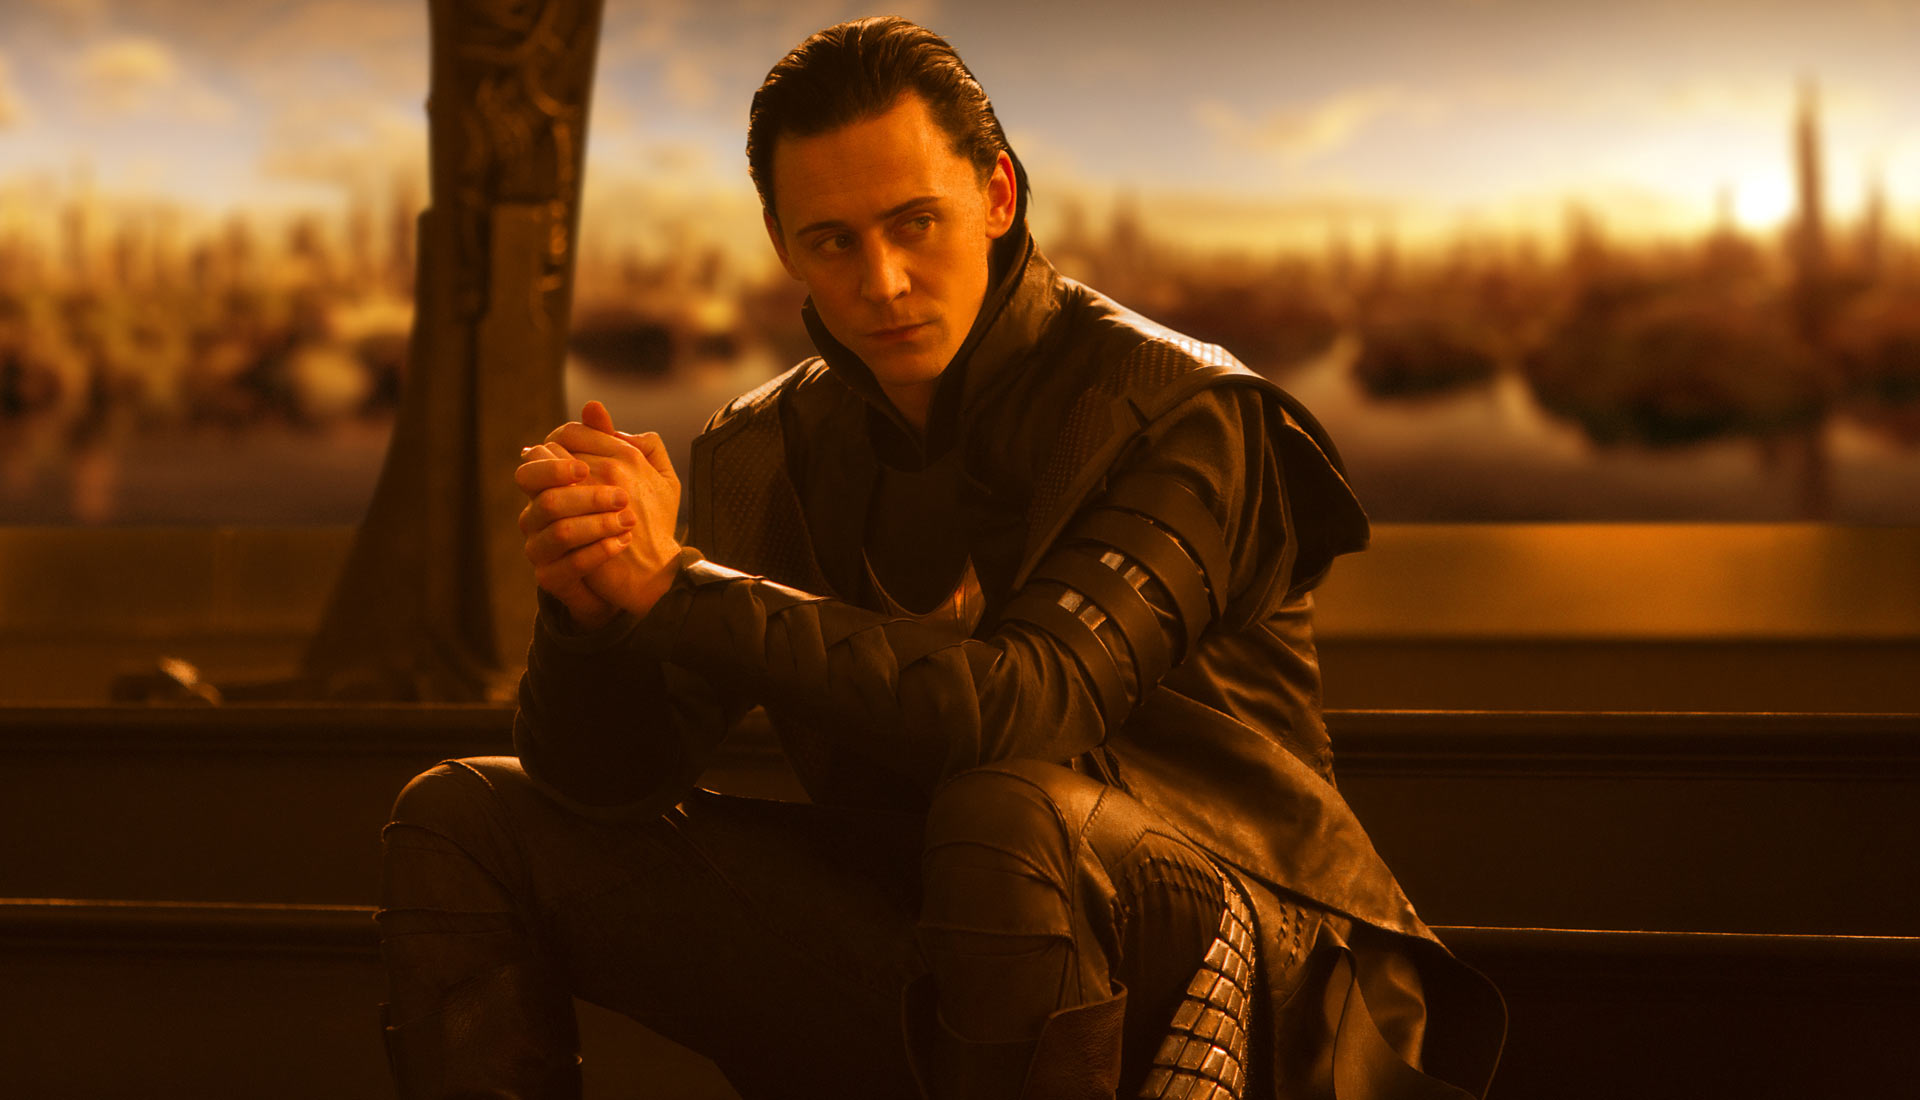 Loki In Asgard From The Movie Thor Desktop Wallpaper